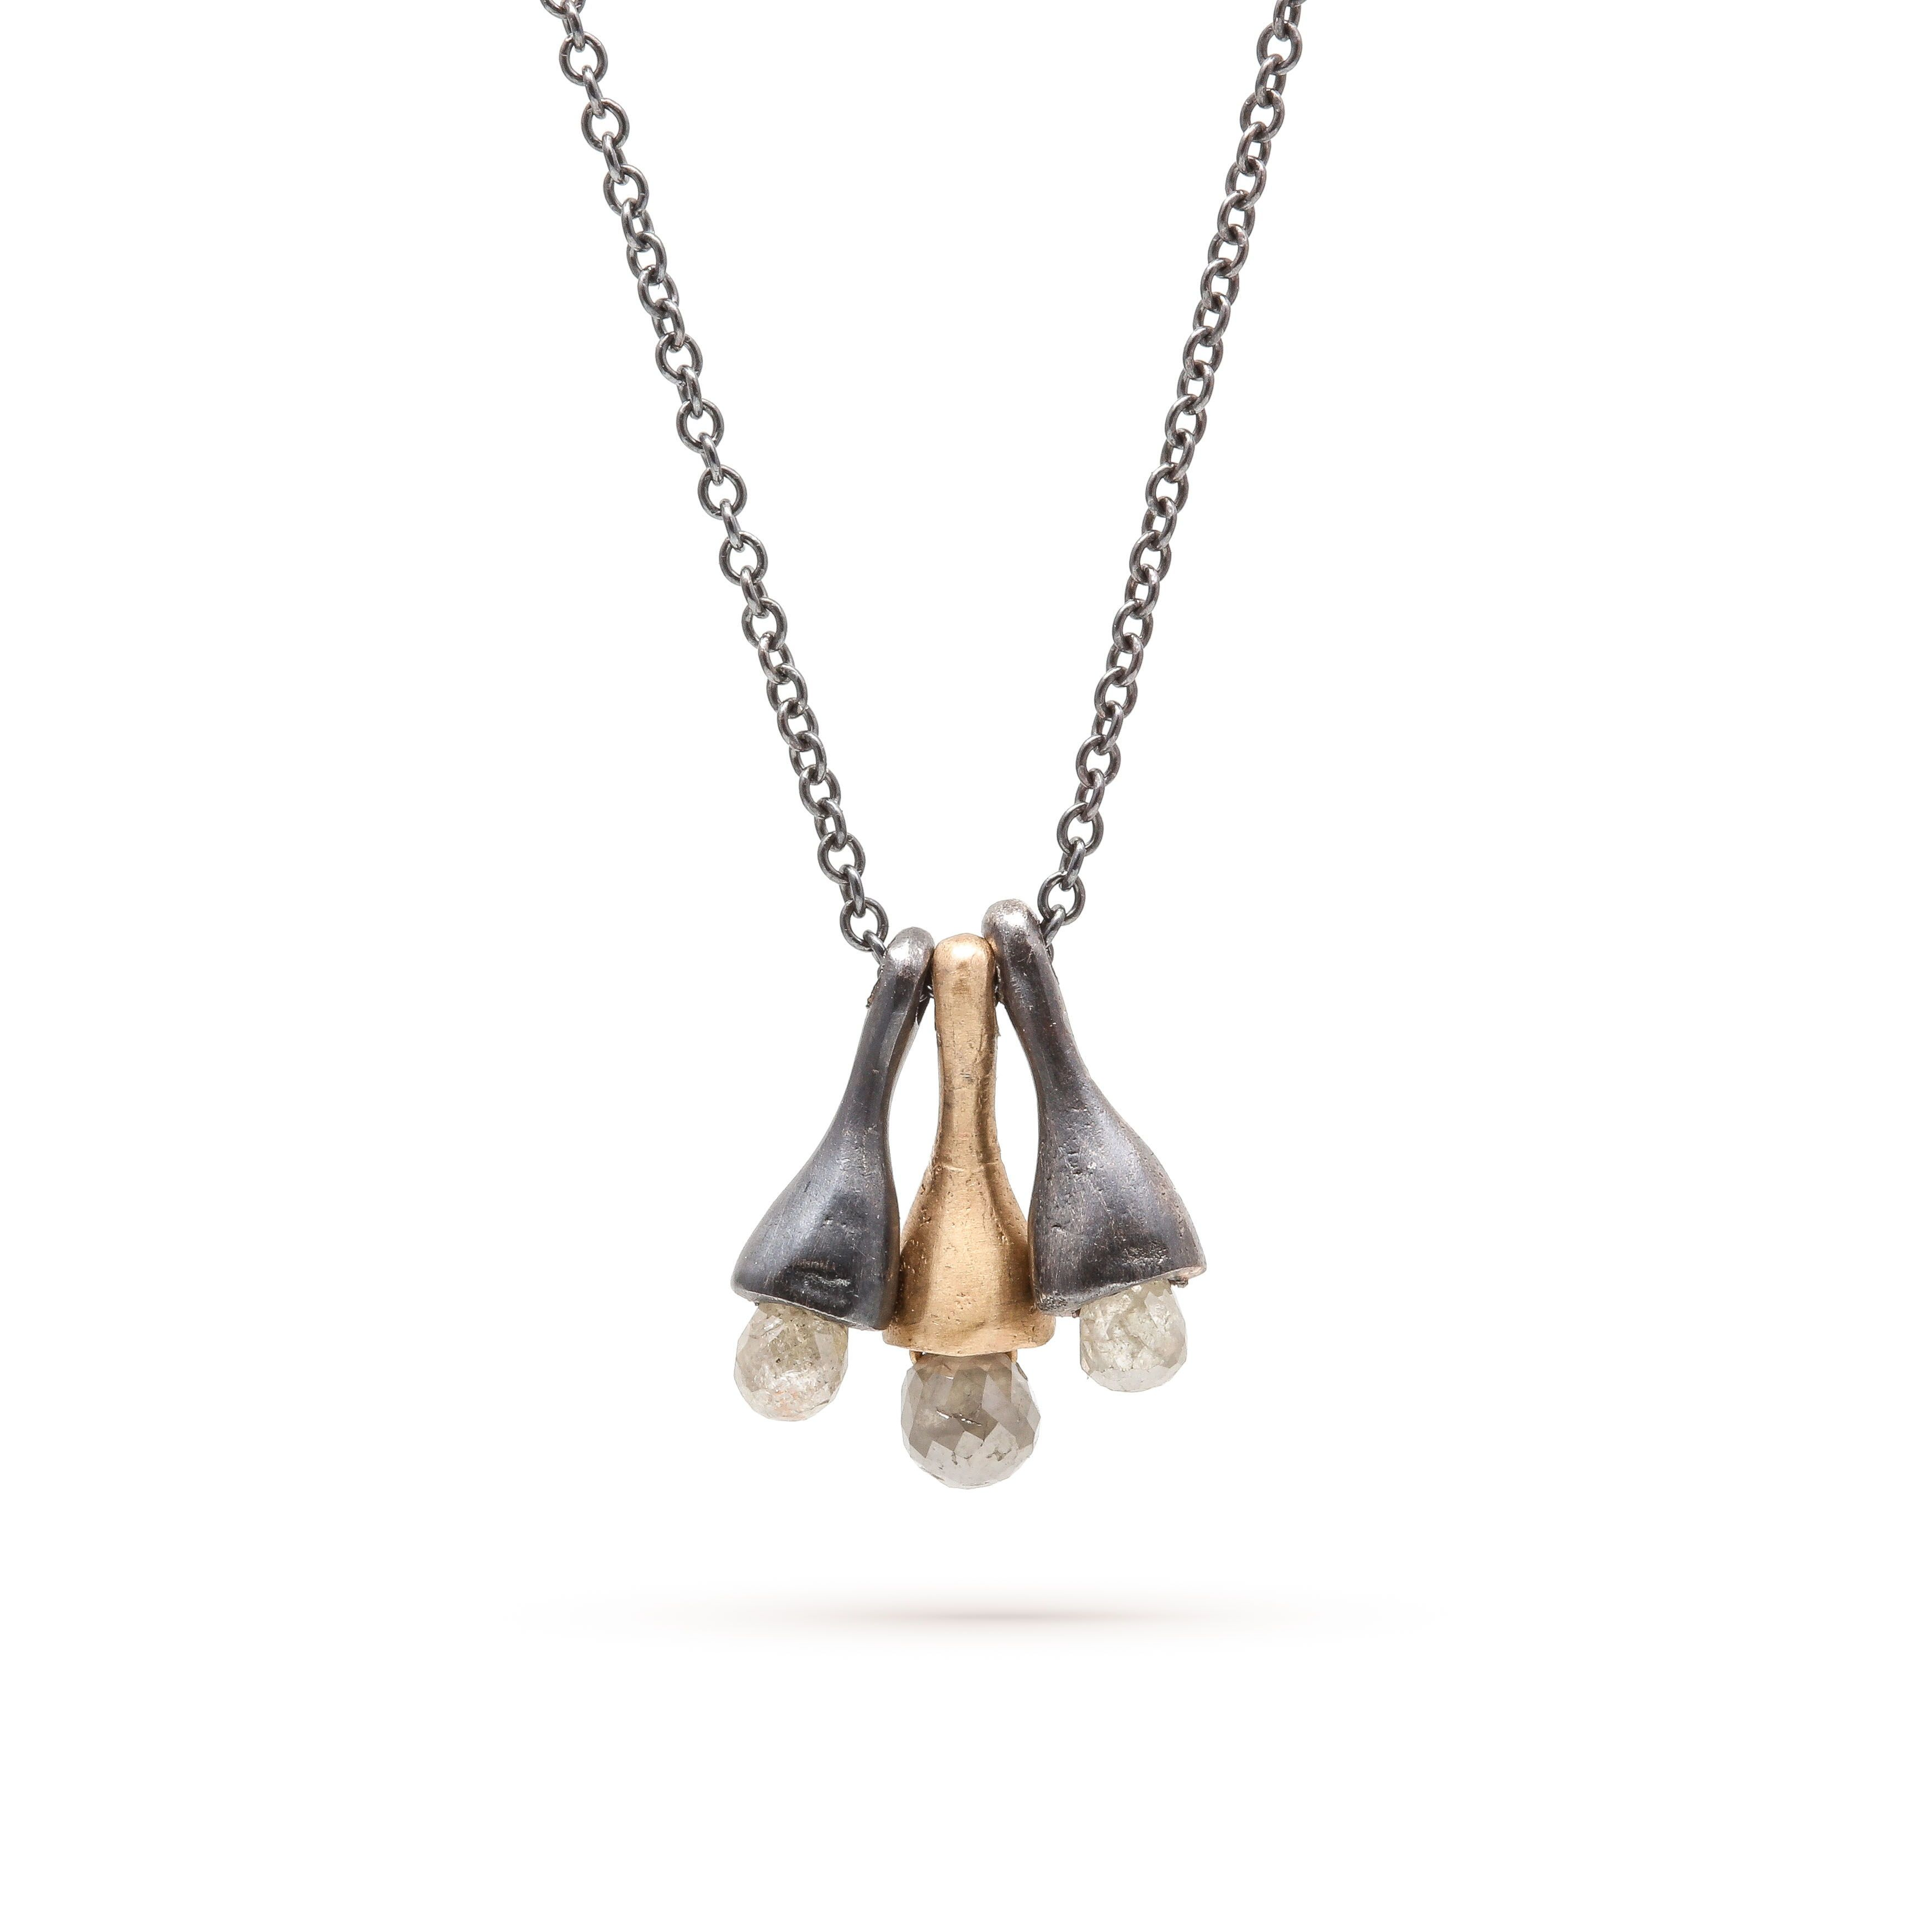 rebeccaovermann oxidized silver and gold necklace made in SF